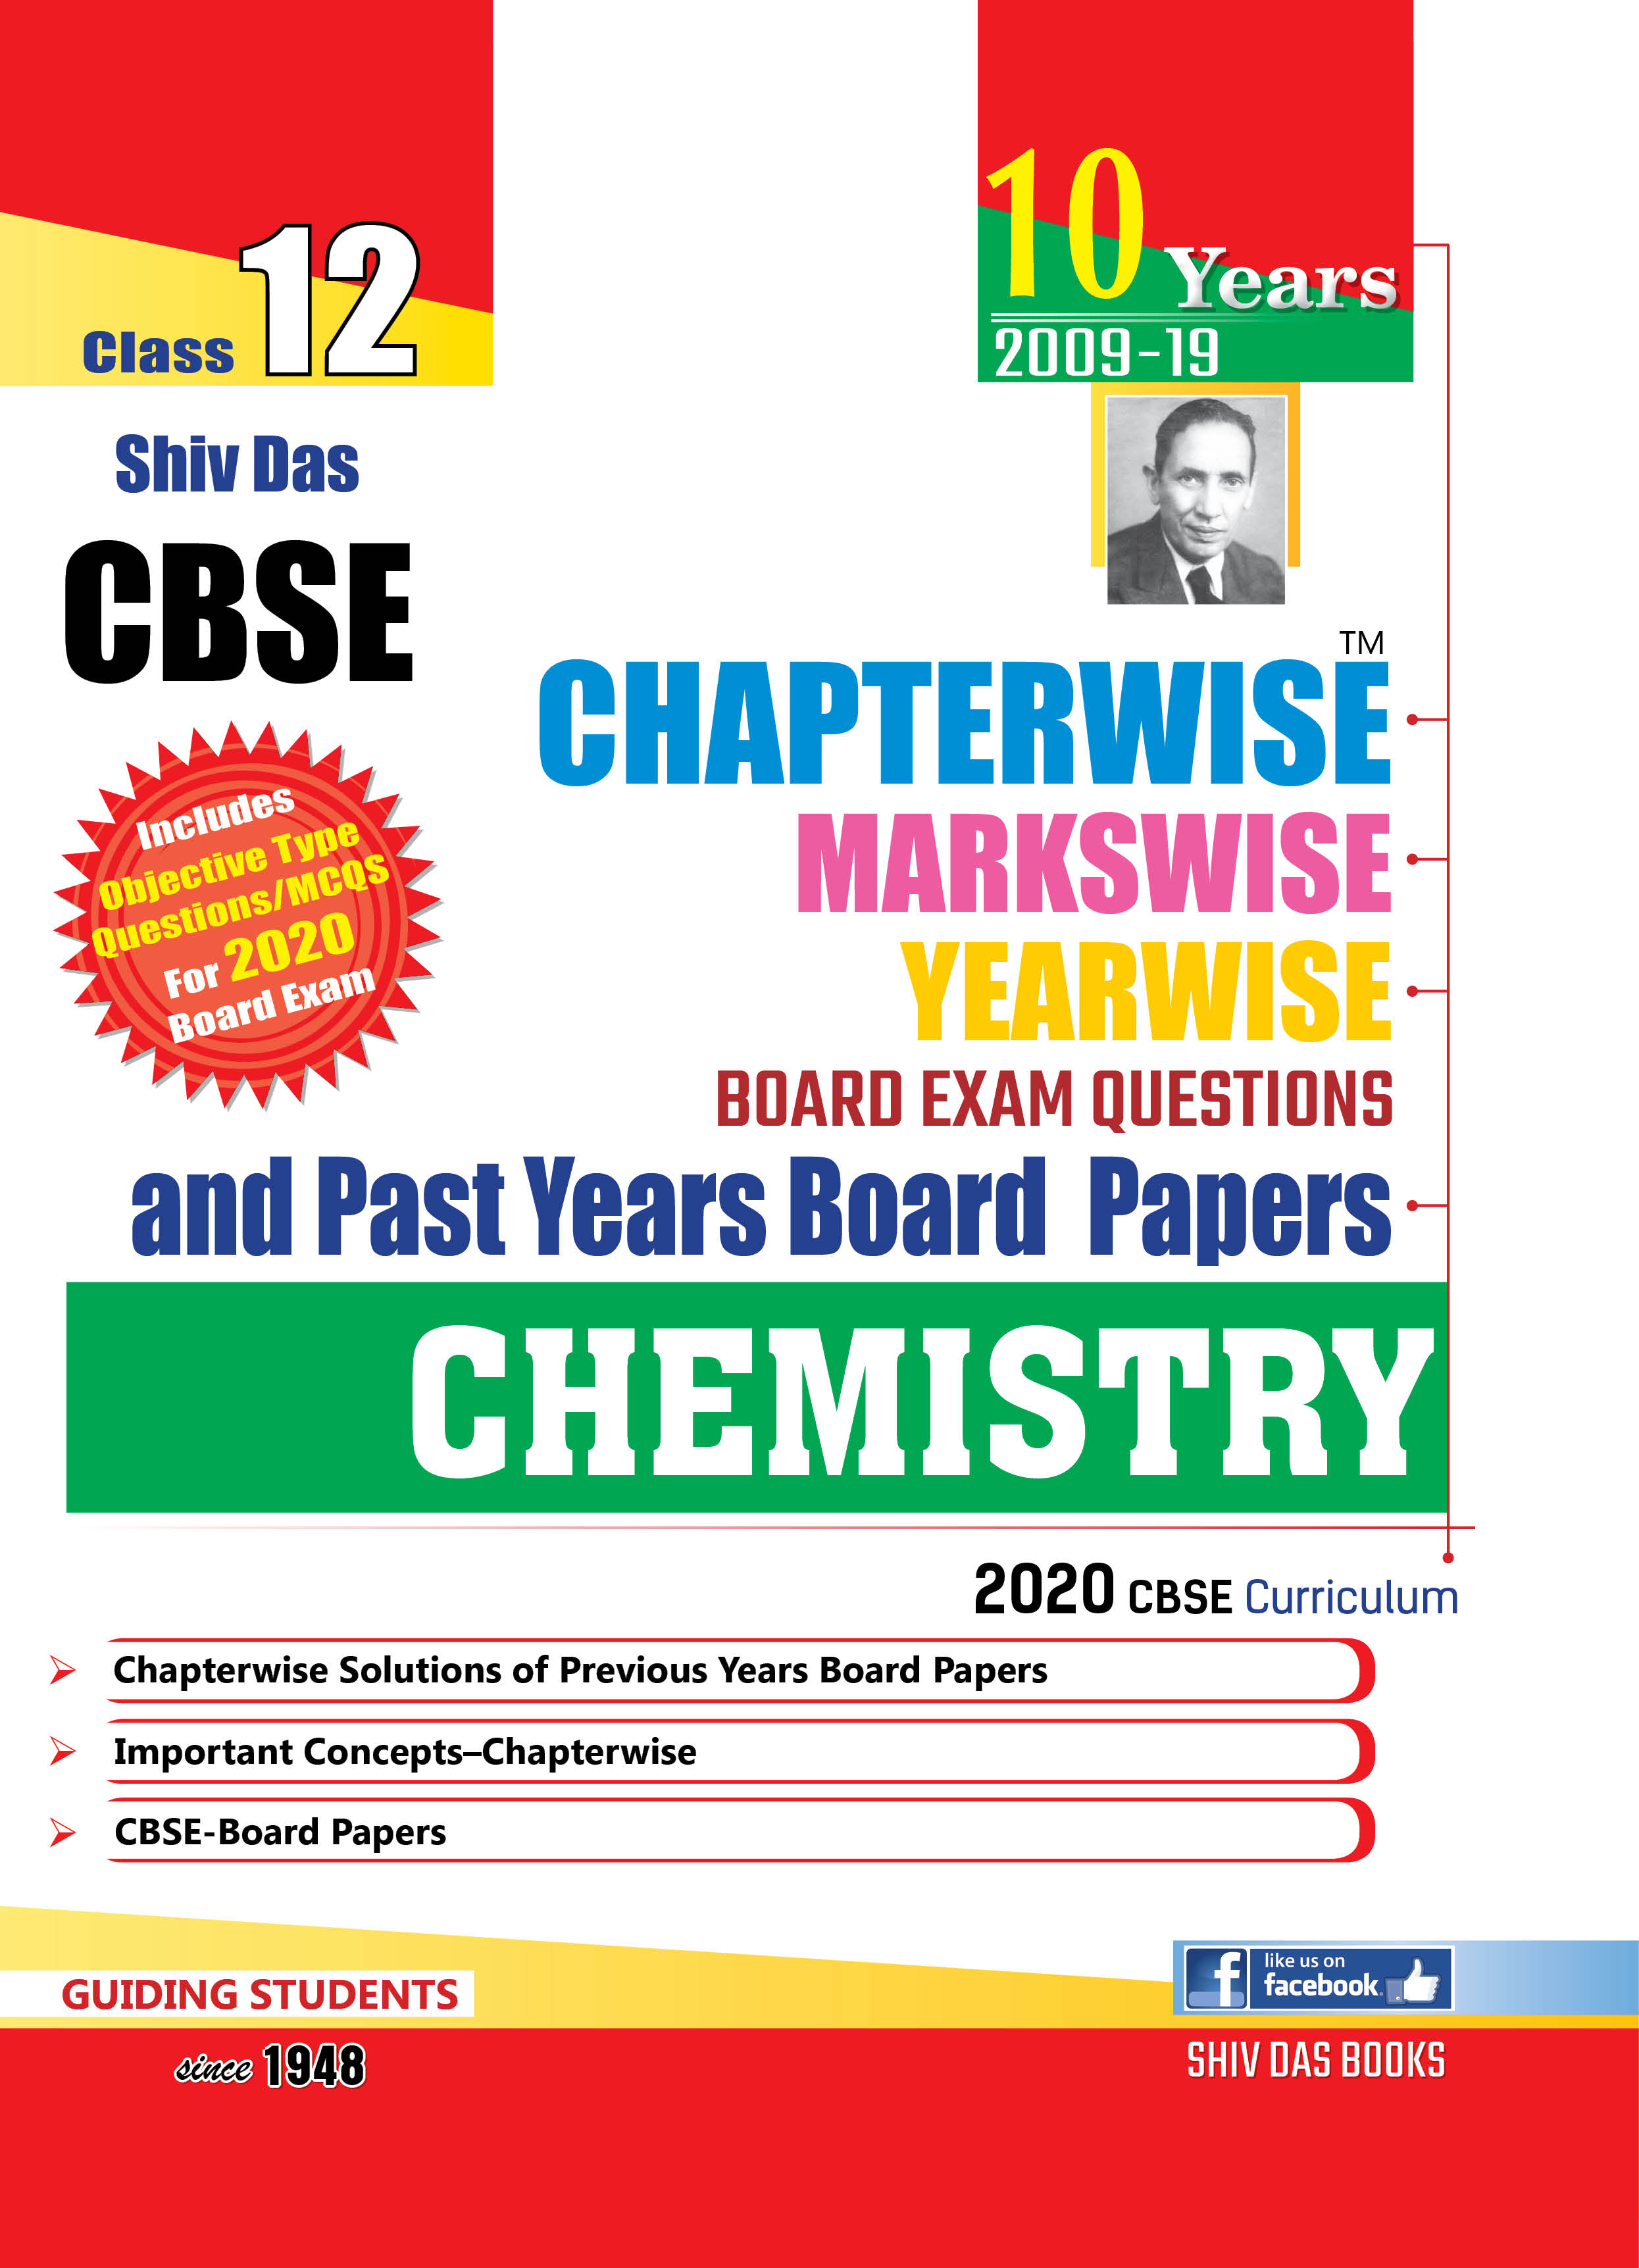 CBSE Chapterwise Markswise Yearwise Board Exam Questions & Past Years Board Papers For Class 12 Chemistry (2020 Board Exam Edition)